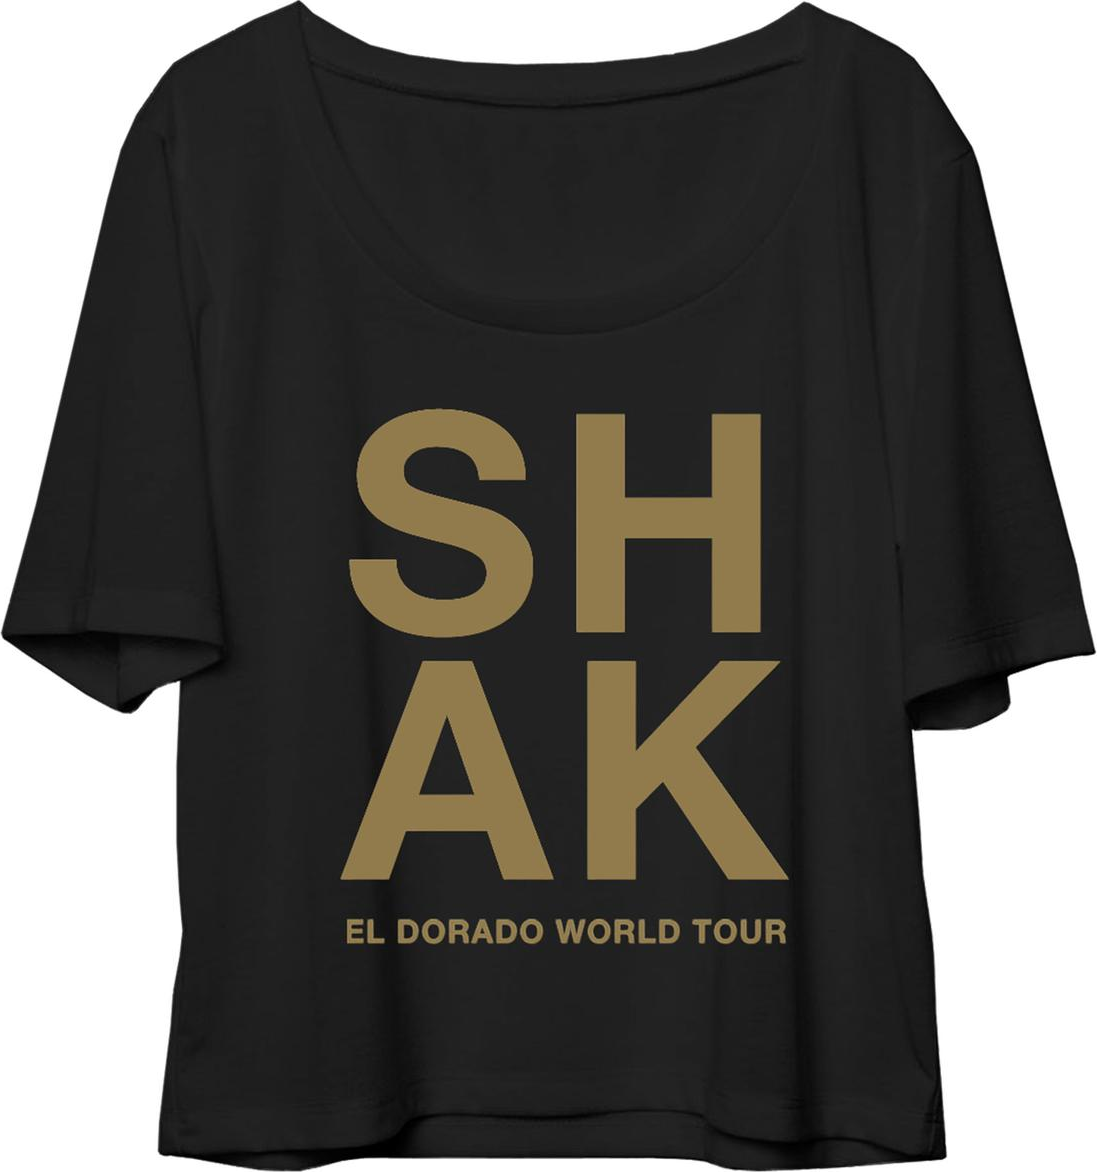 shak world tour font